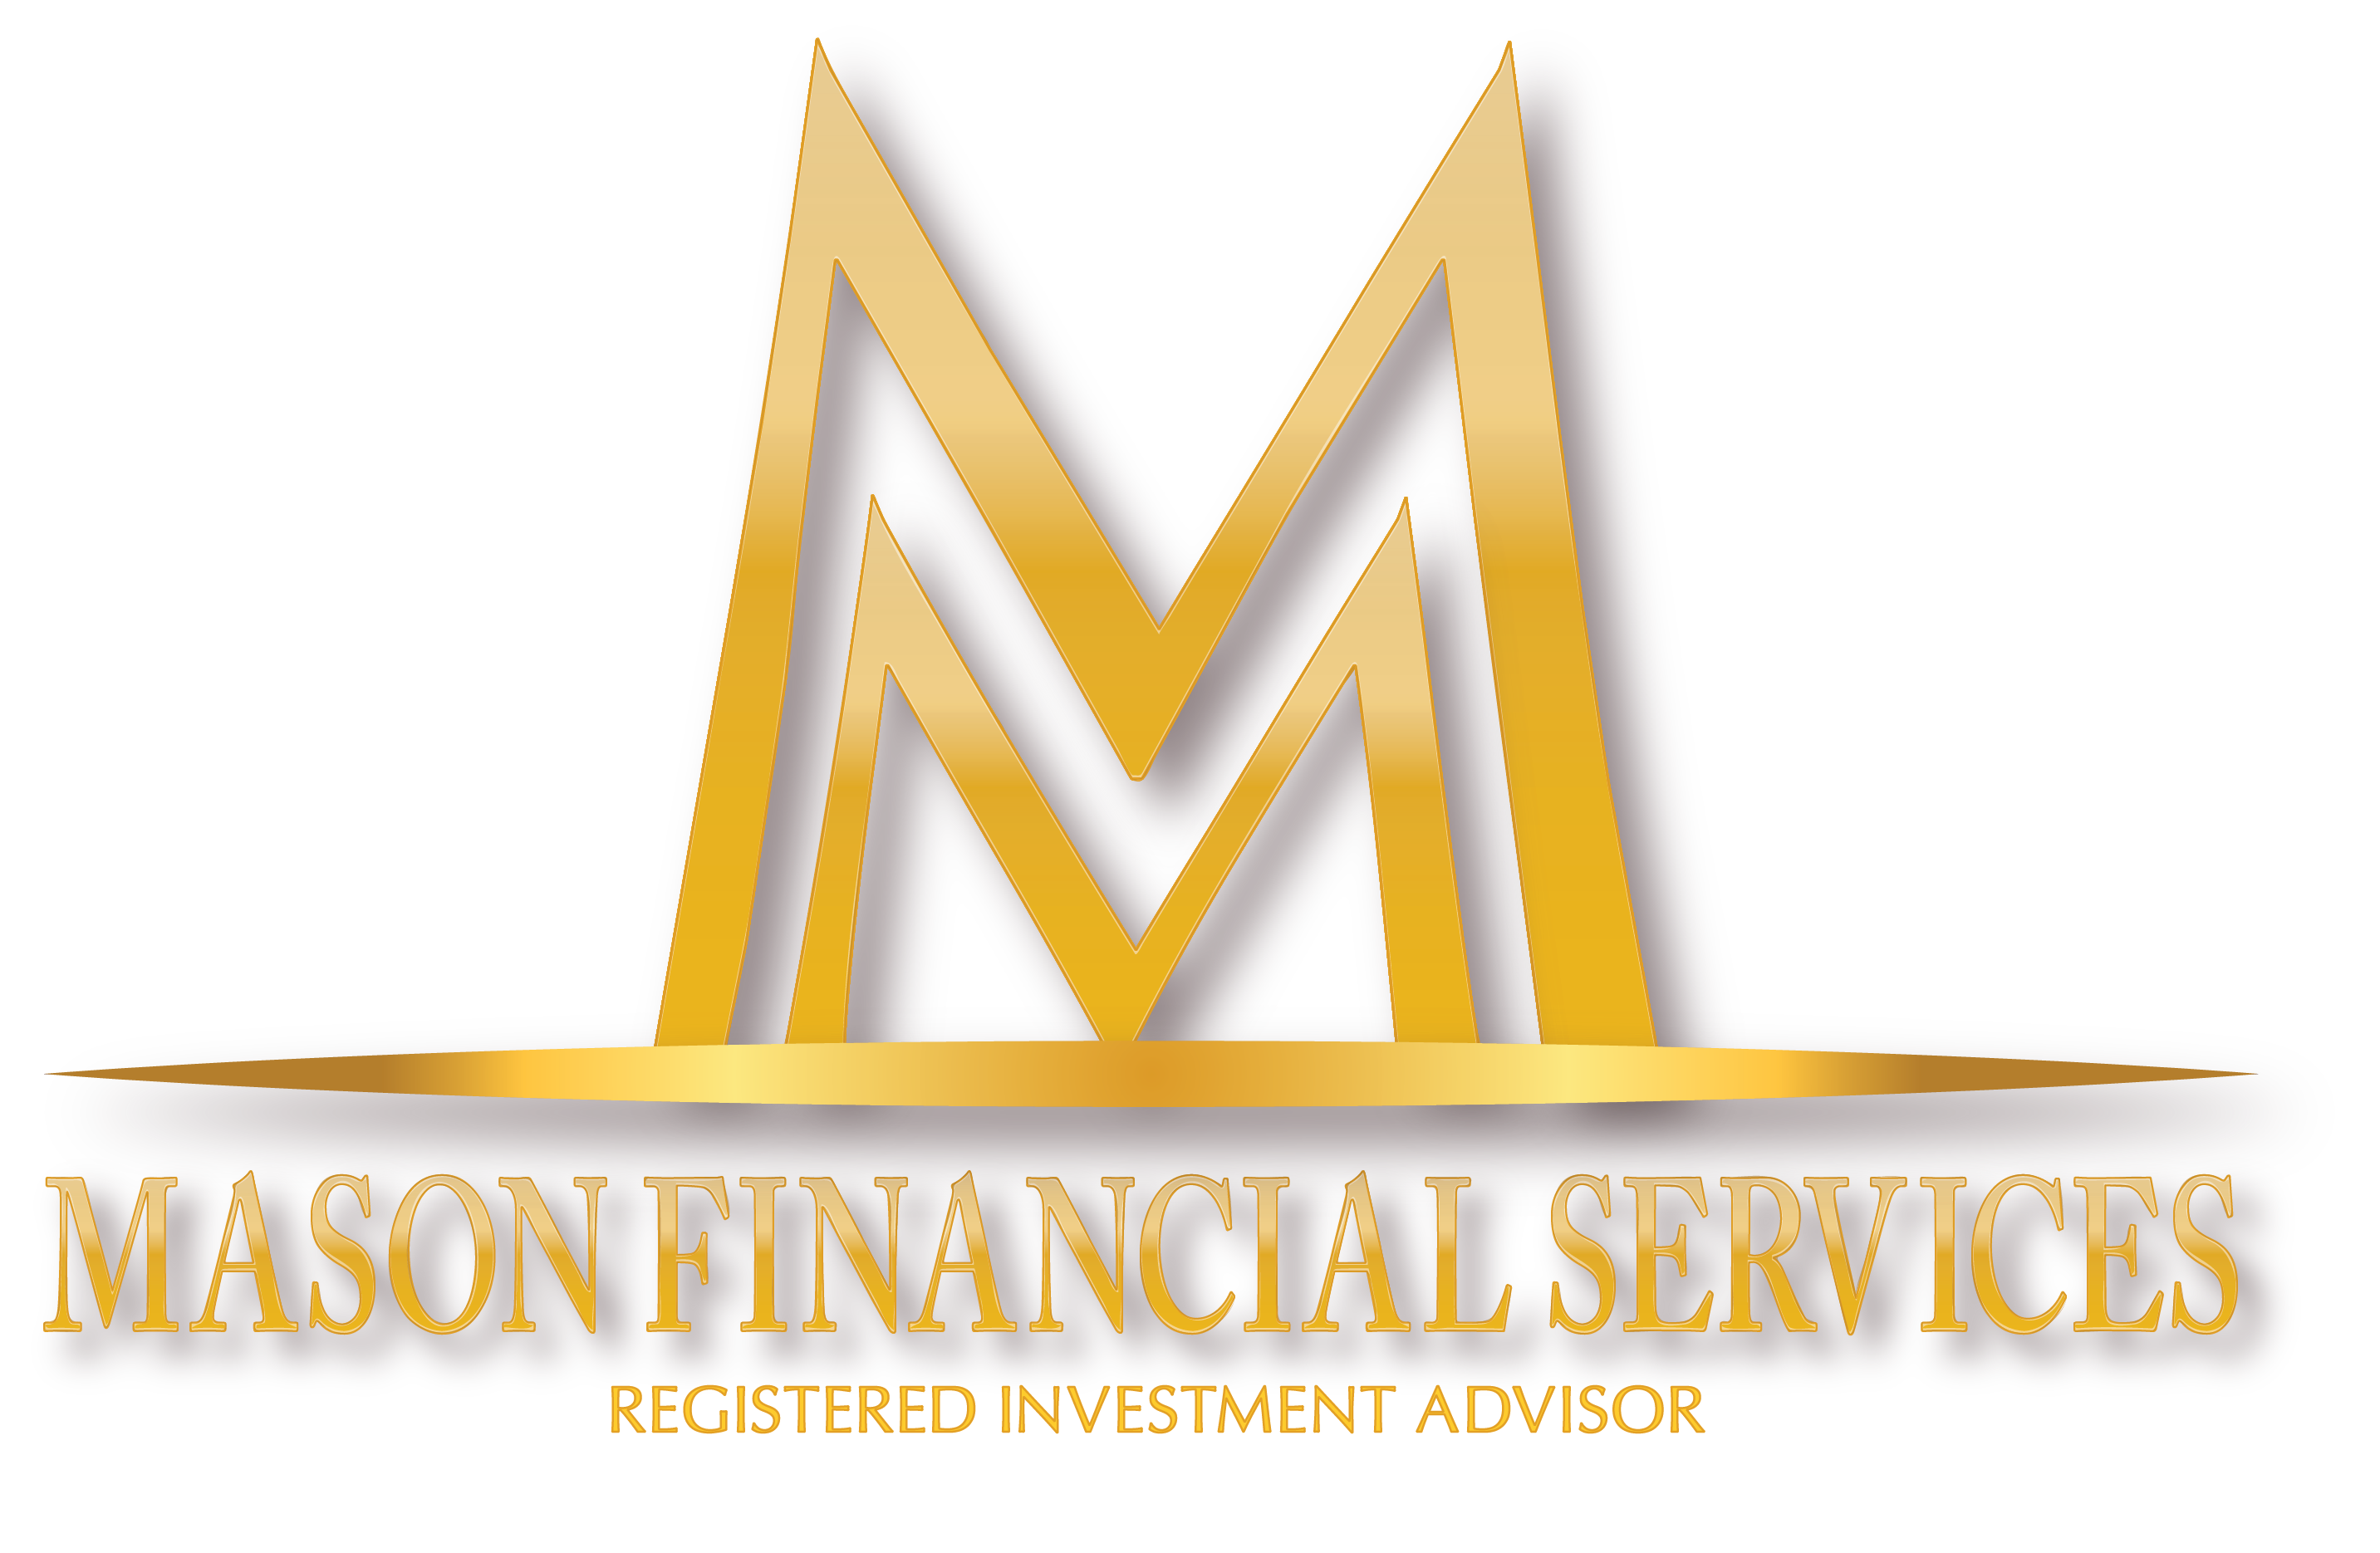 Mason Financial Services, Inc.